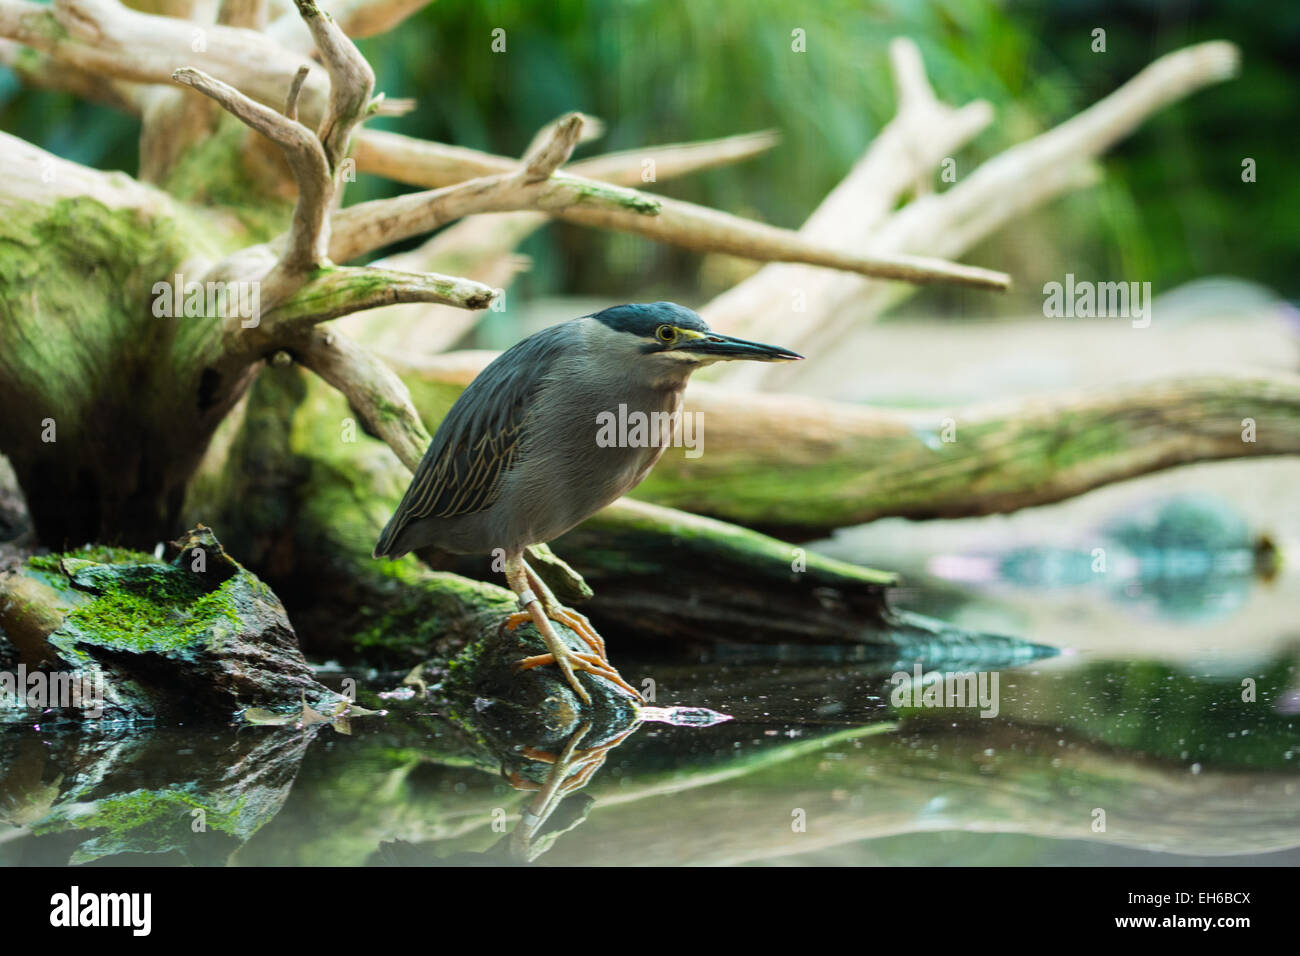 water bird sitting on a lake in front of a root - Stock Image